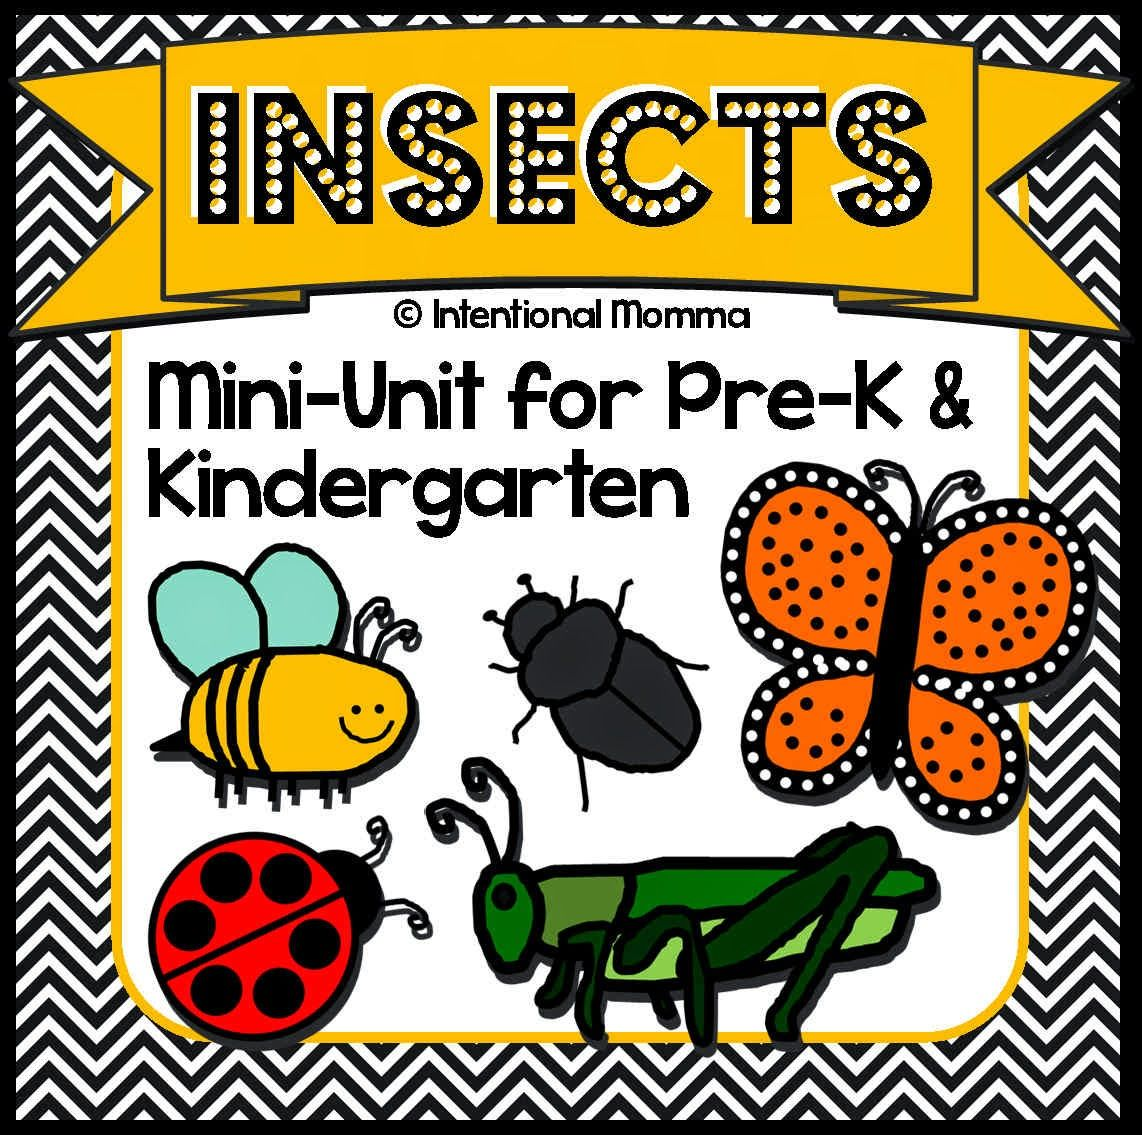 worksheet Bug Worksheets For Kindergarten insects and bugs printable mini unit worksheets for pre k kindergarten